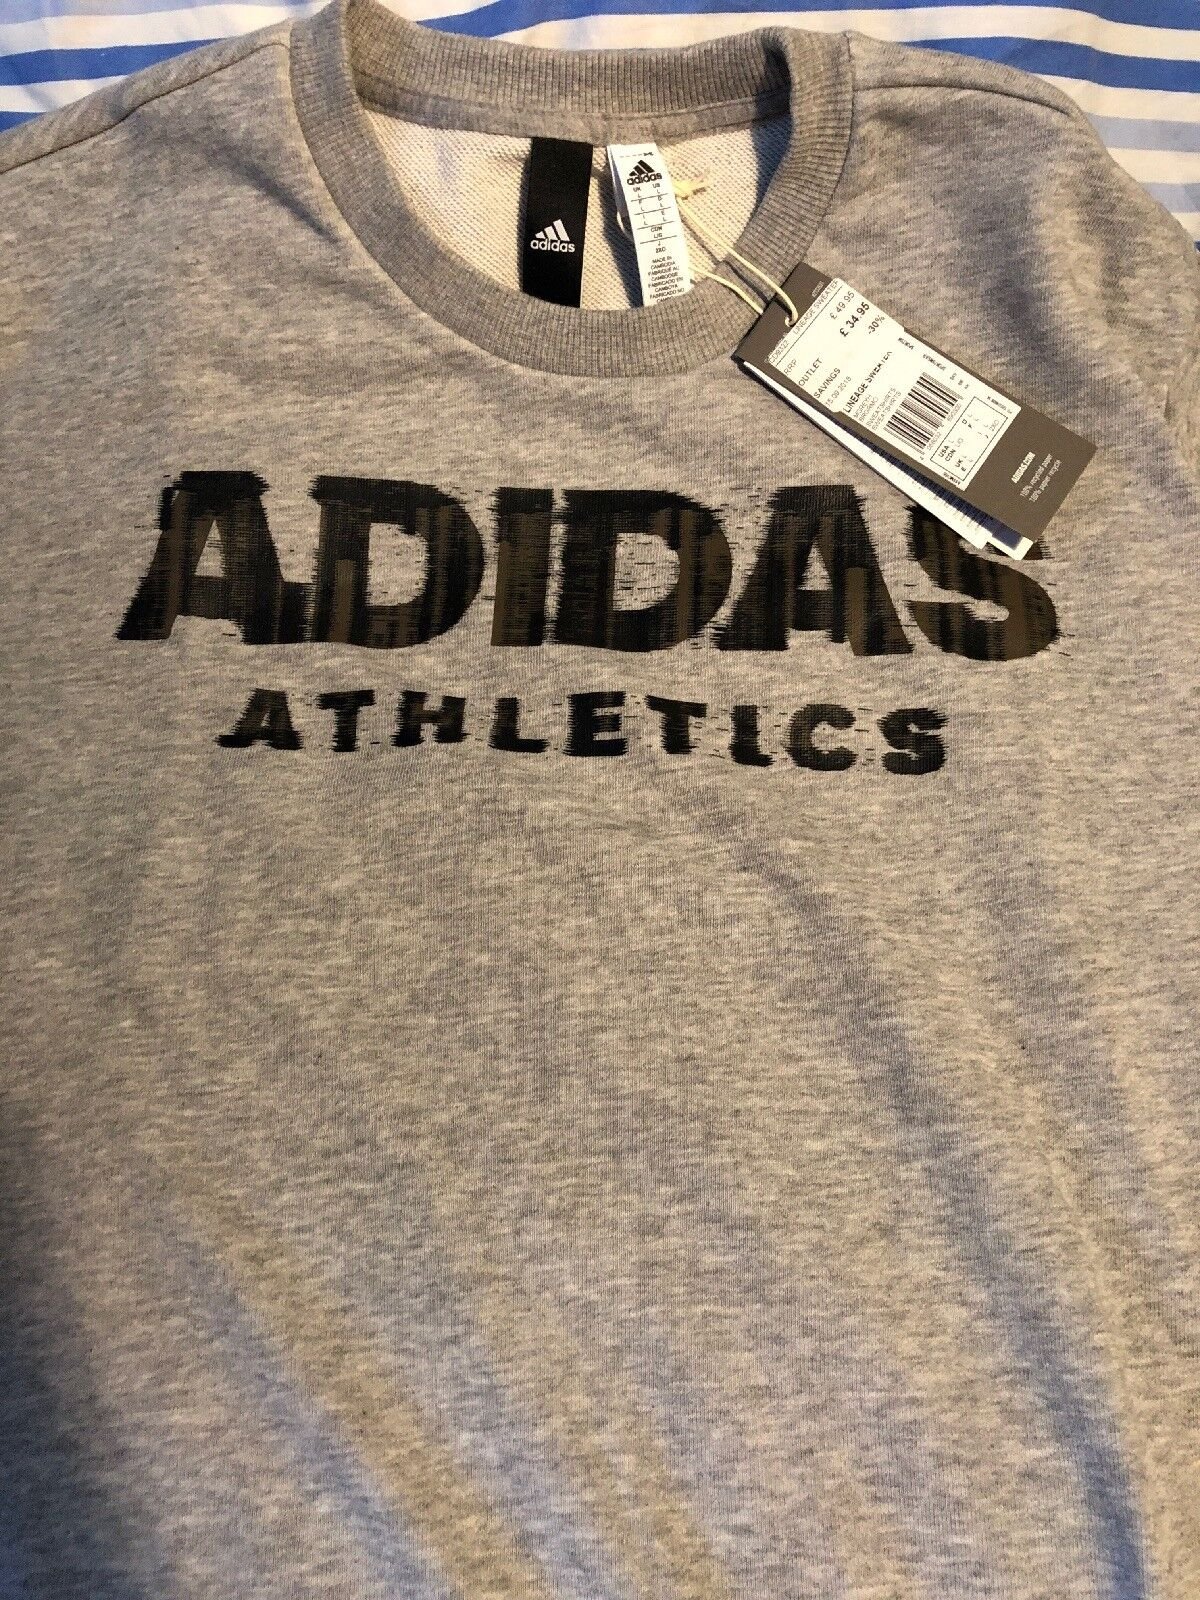 Adidas Athletics Grey Sweatshirt Large